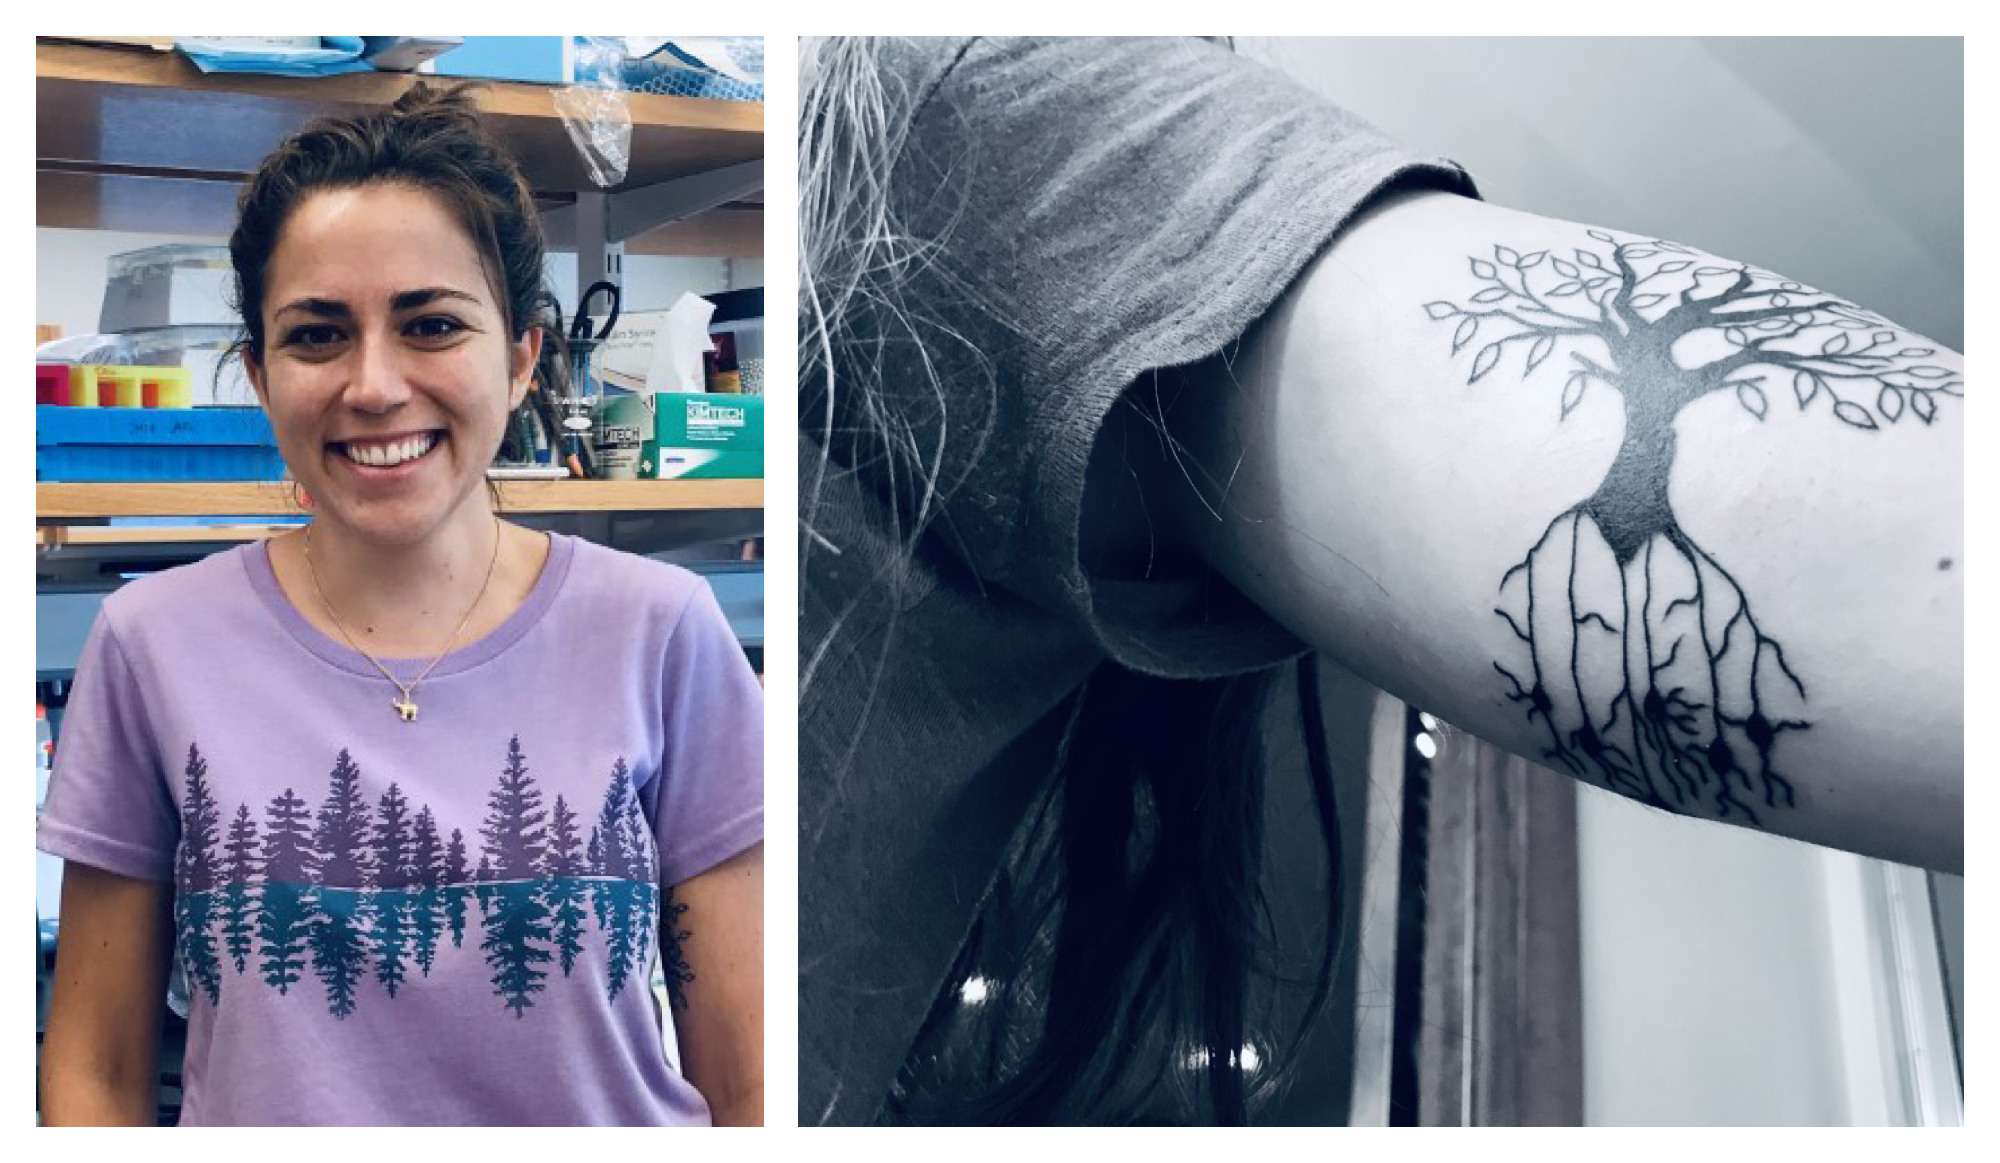 Photo collage of Valentina Lagomarsino and her tattoo of the tree of life